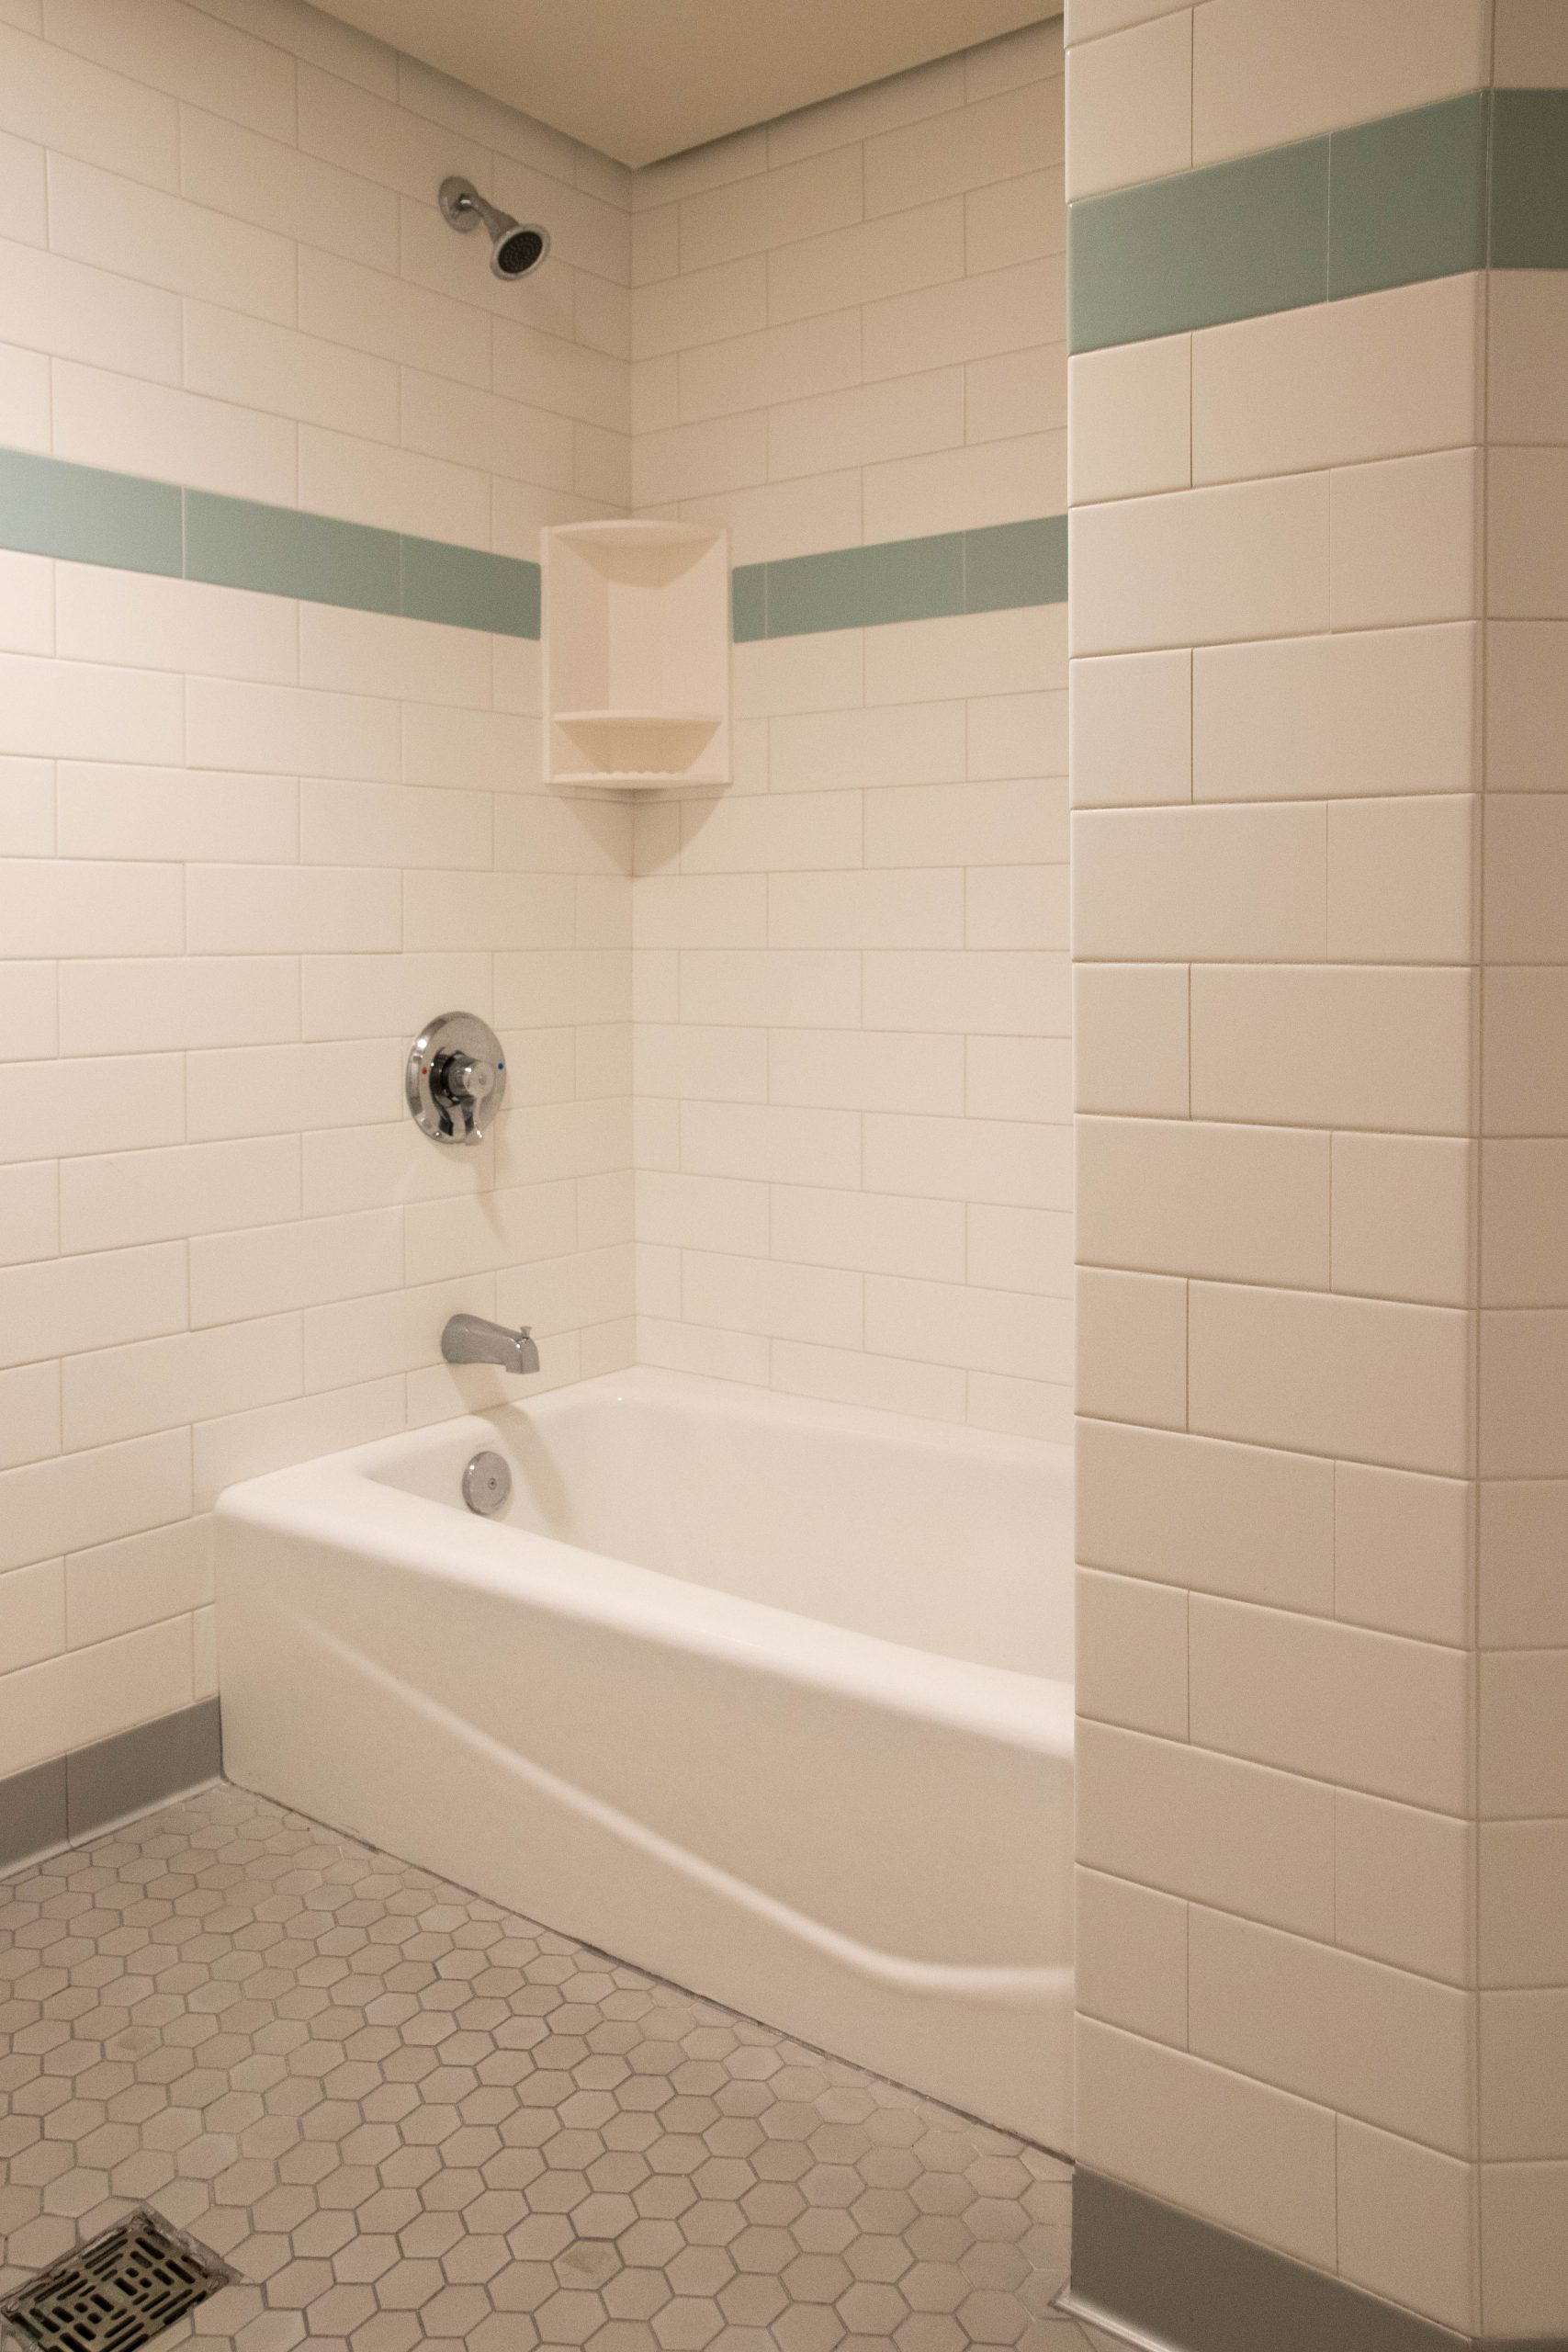 Community bathrooms of dorm hall: View of bathtub with soap shelf and temperature control